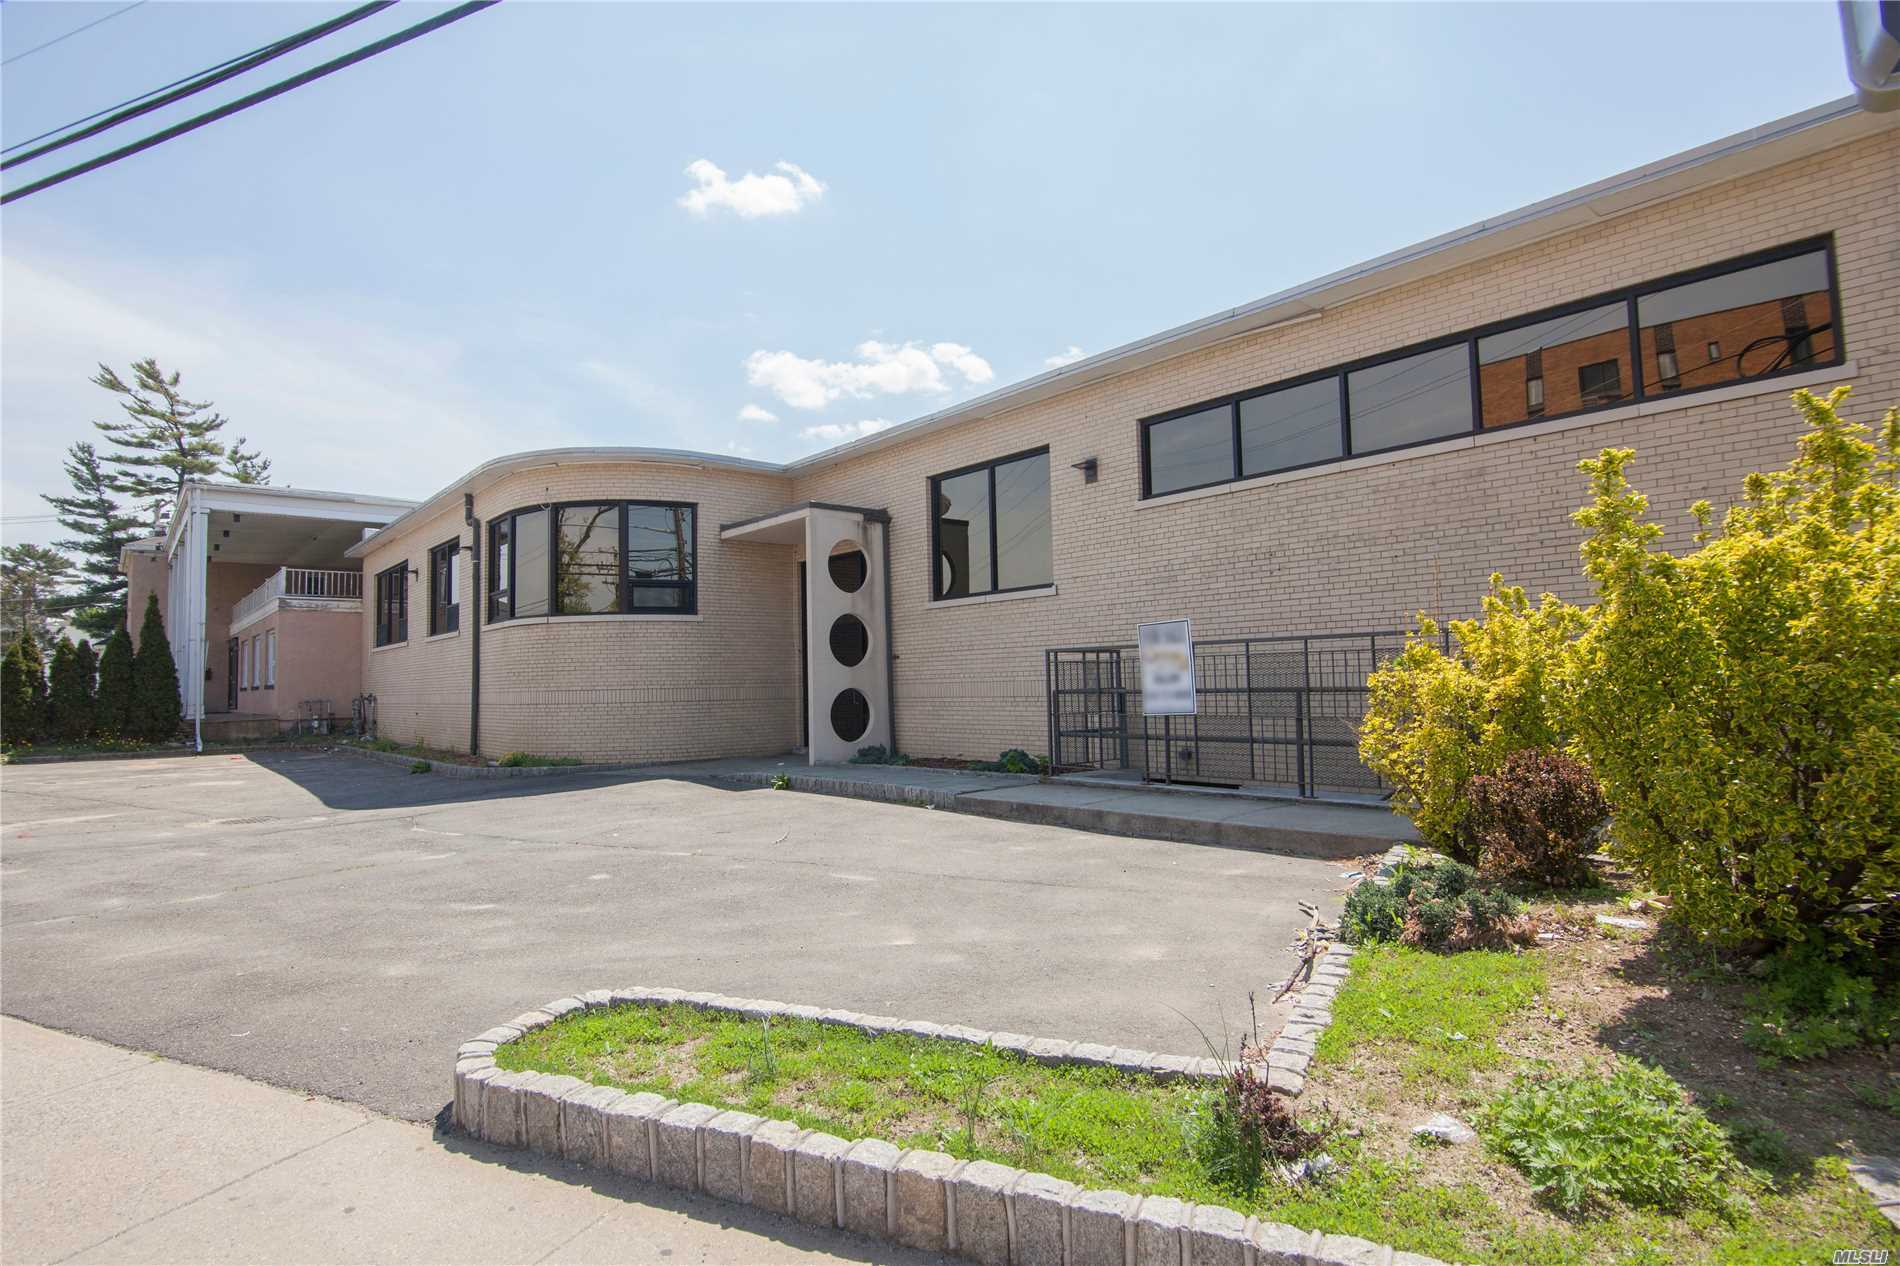 Commercial for sale in 171 Greenwich St, Hempstead, NY ,11550